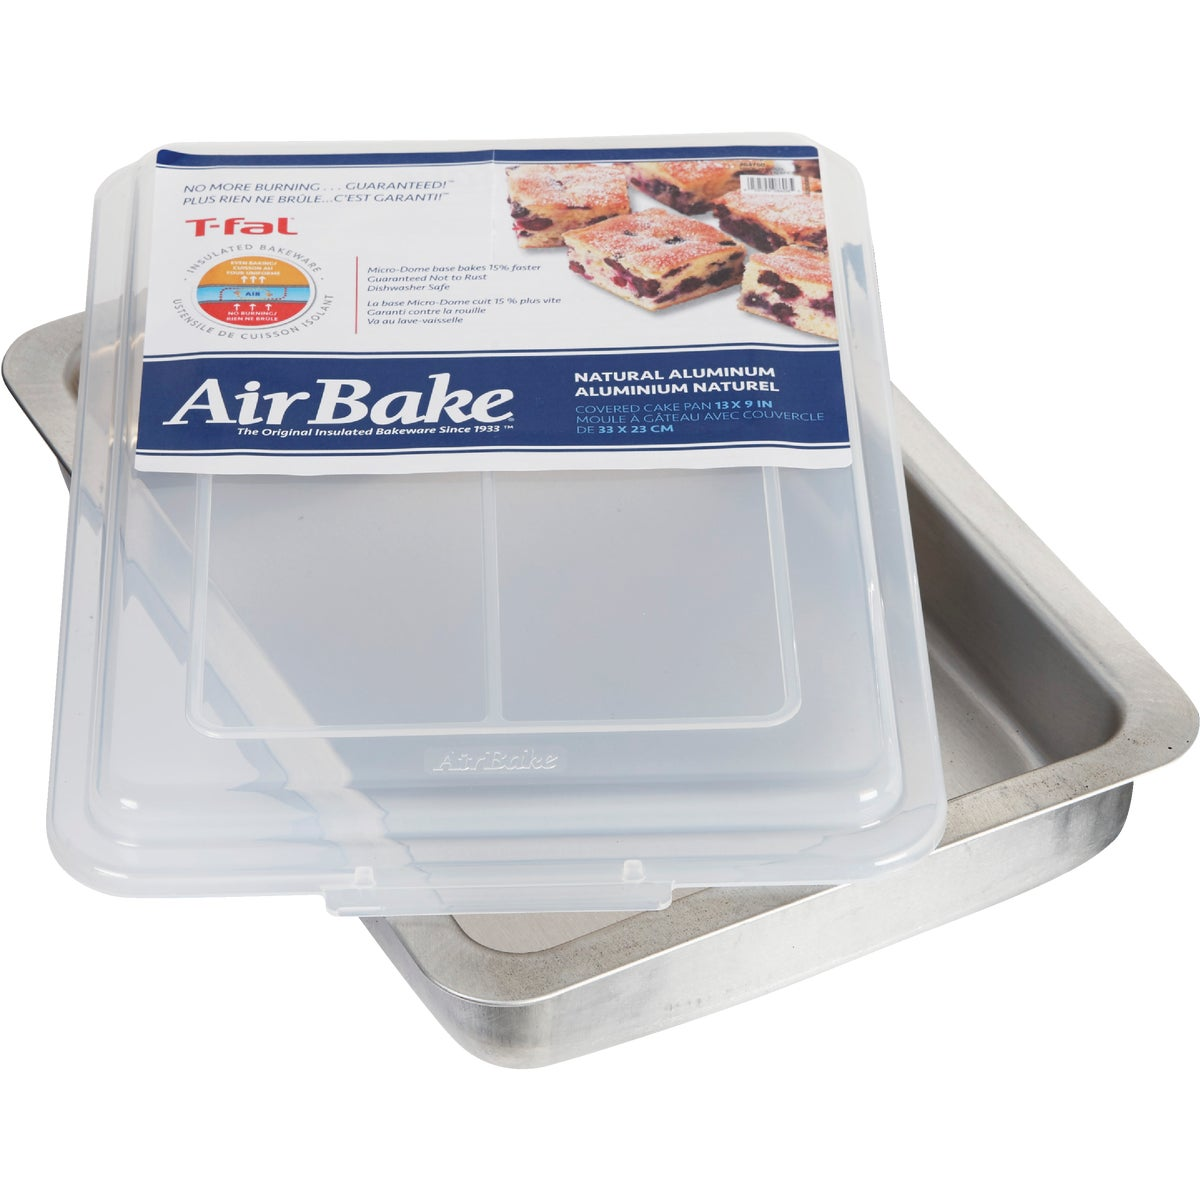 9X13 PAN W/COVER - 08606PA by T Fal Wearever